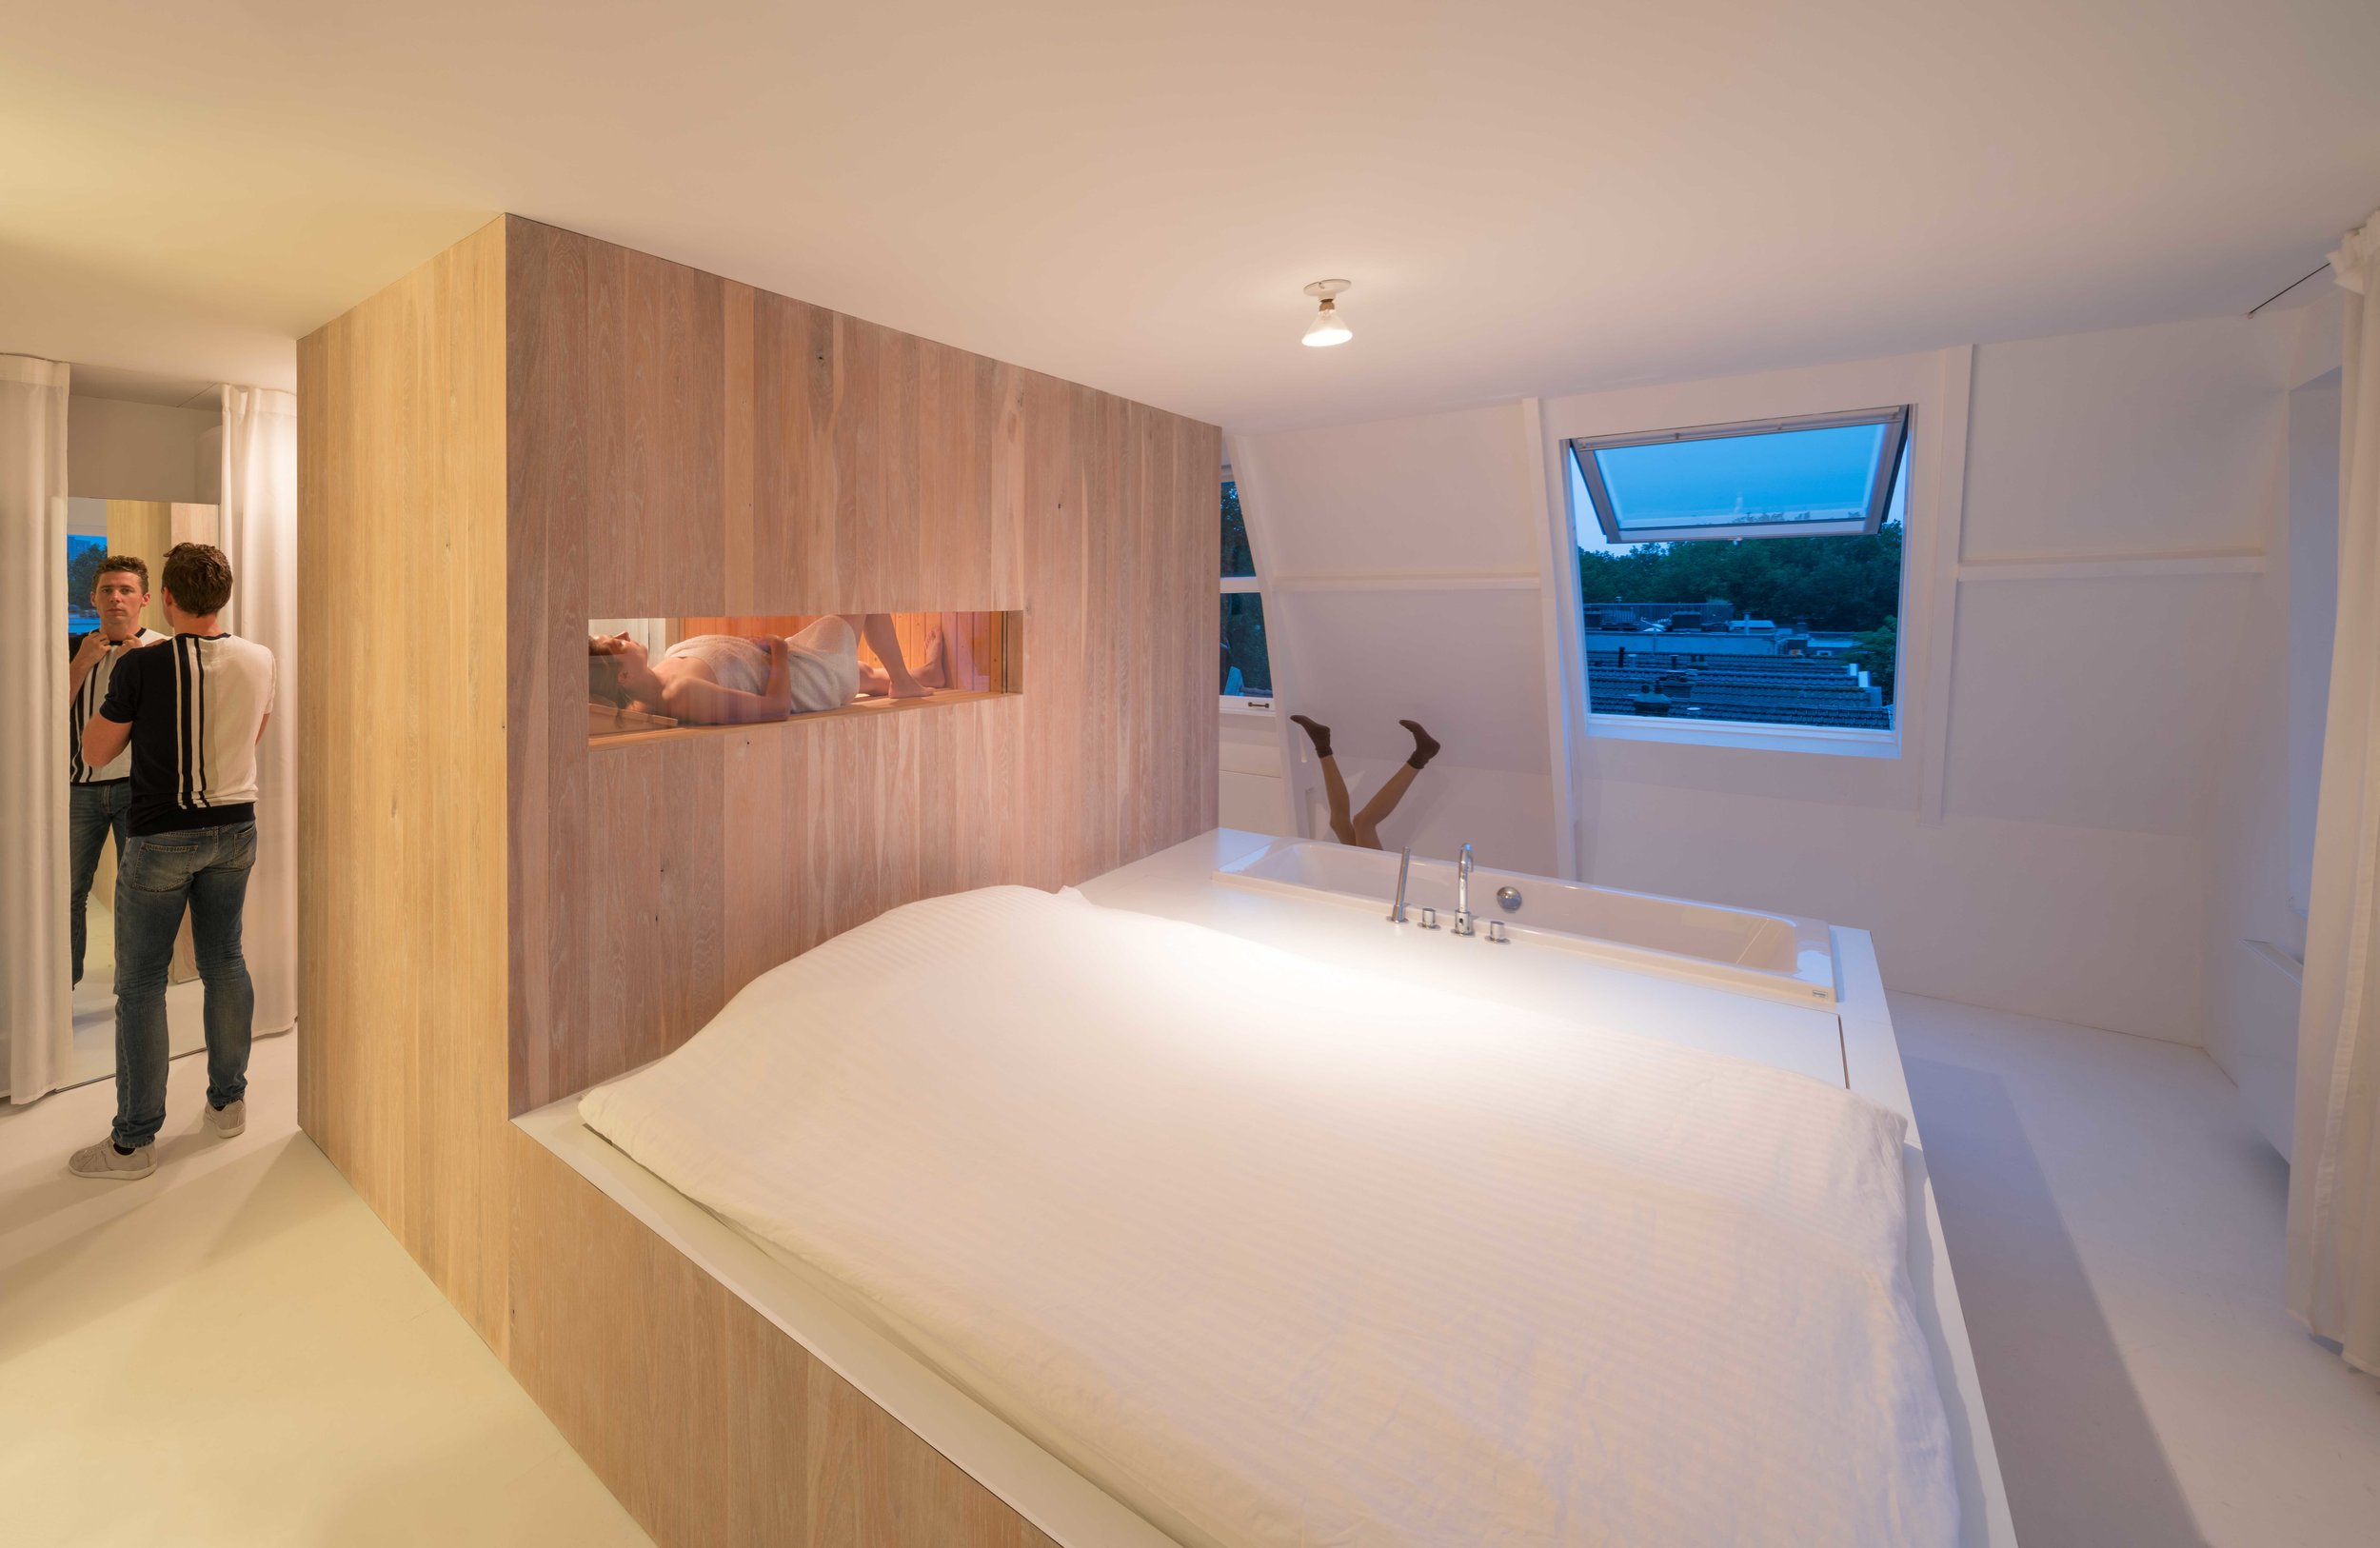 the wooden element containing the welness functions: bath tub, sauna and steam shower